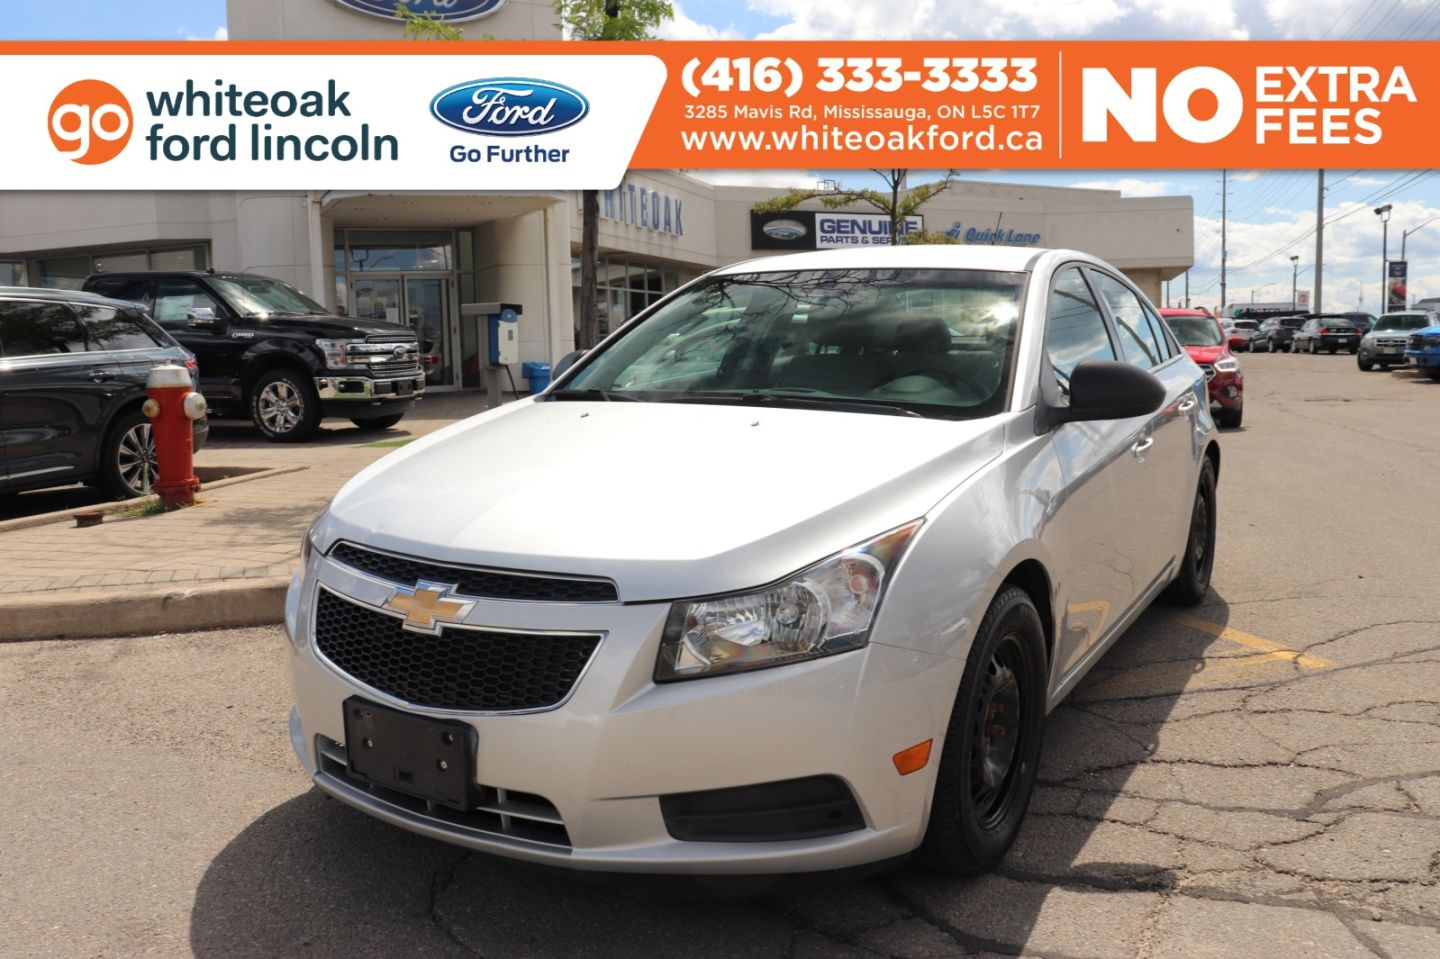 2012 Chevrolet Cruze LS+ w/1SB for sale in Mississauga, Ontario